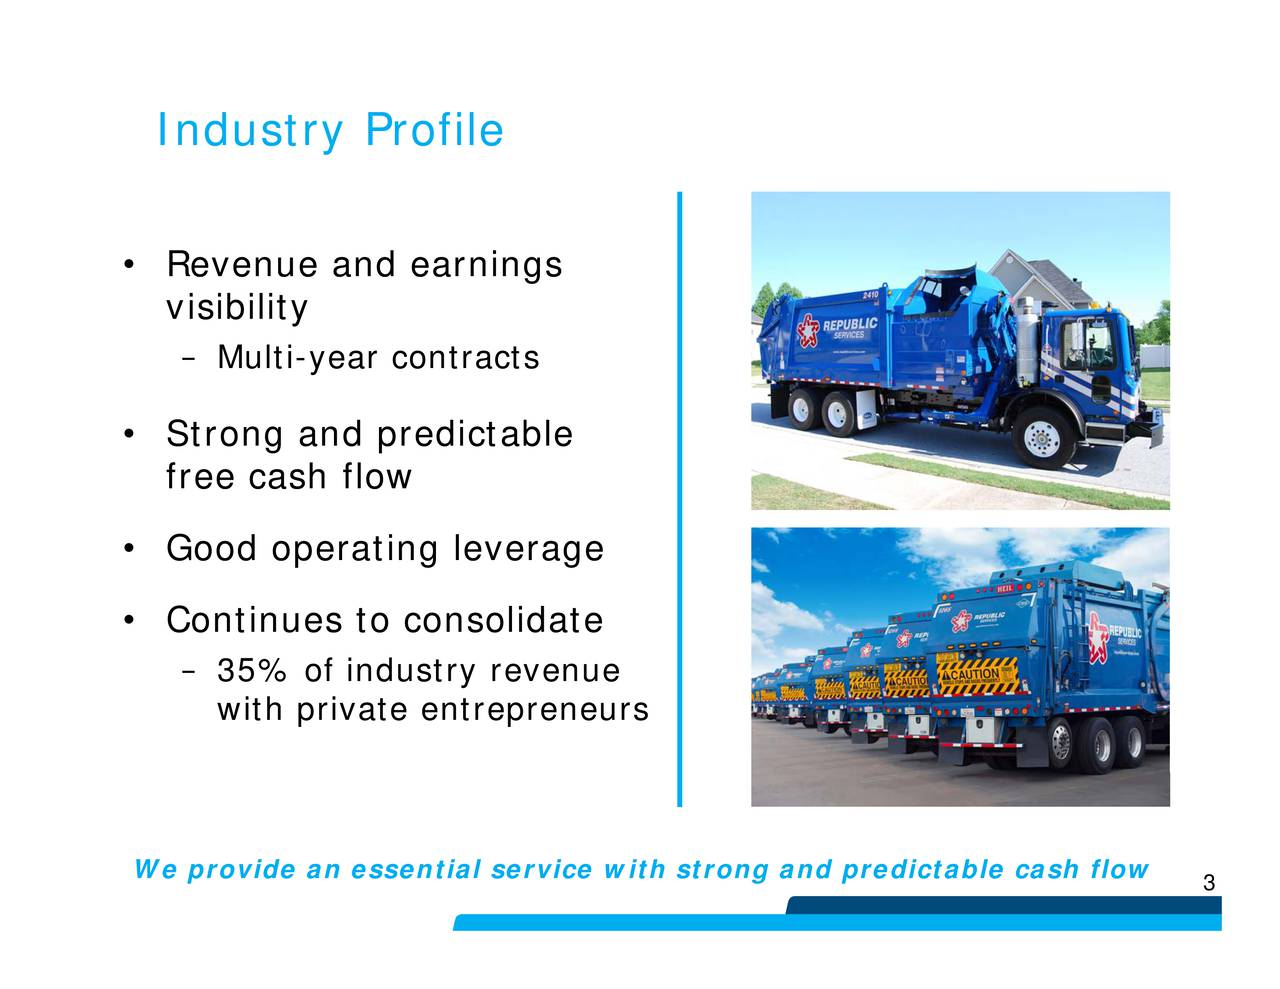 Multi-year contrac35%itofirvattenrreprueeurs Industry ProfileiStfrngrnisgpopenctibgolcoeraglidate We provide an essential service with strong and predictable cash flow